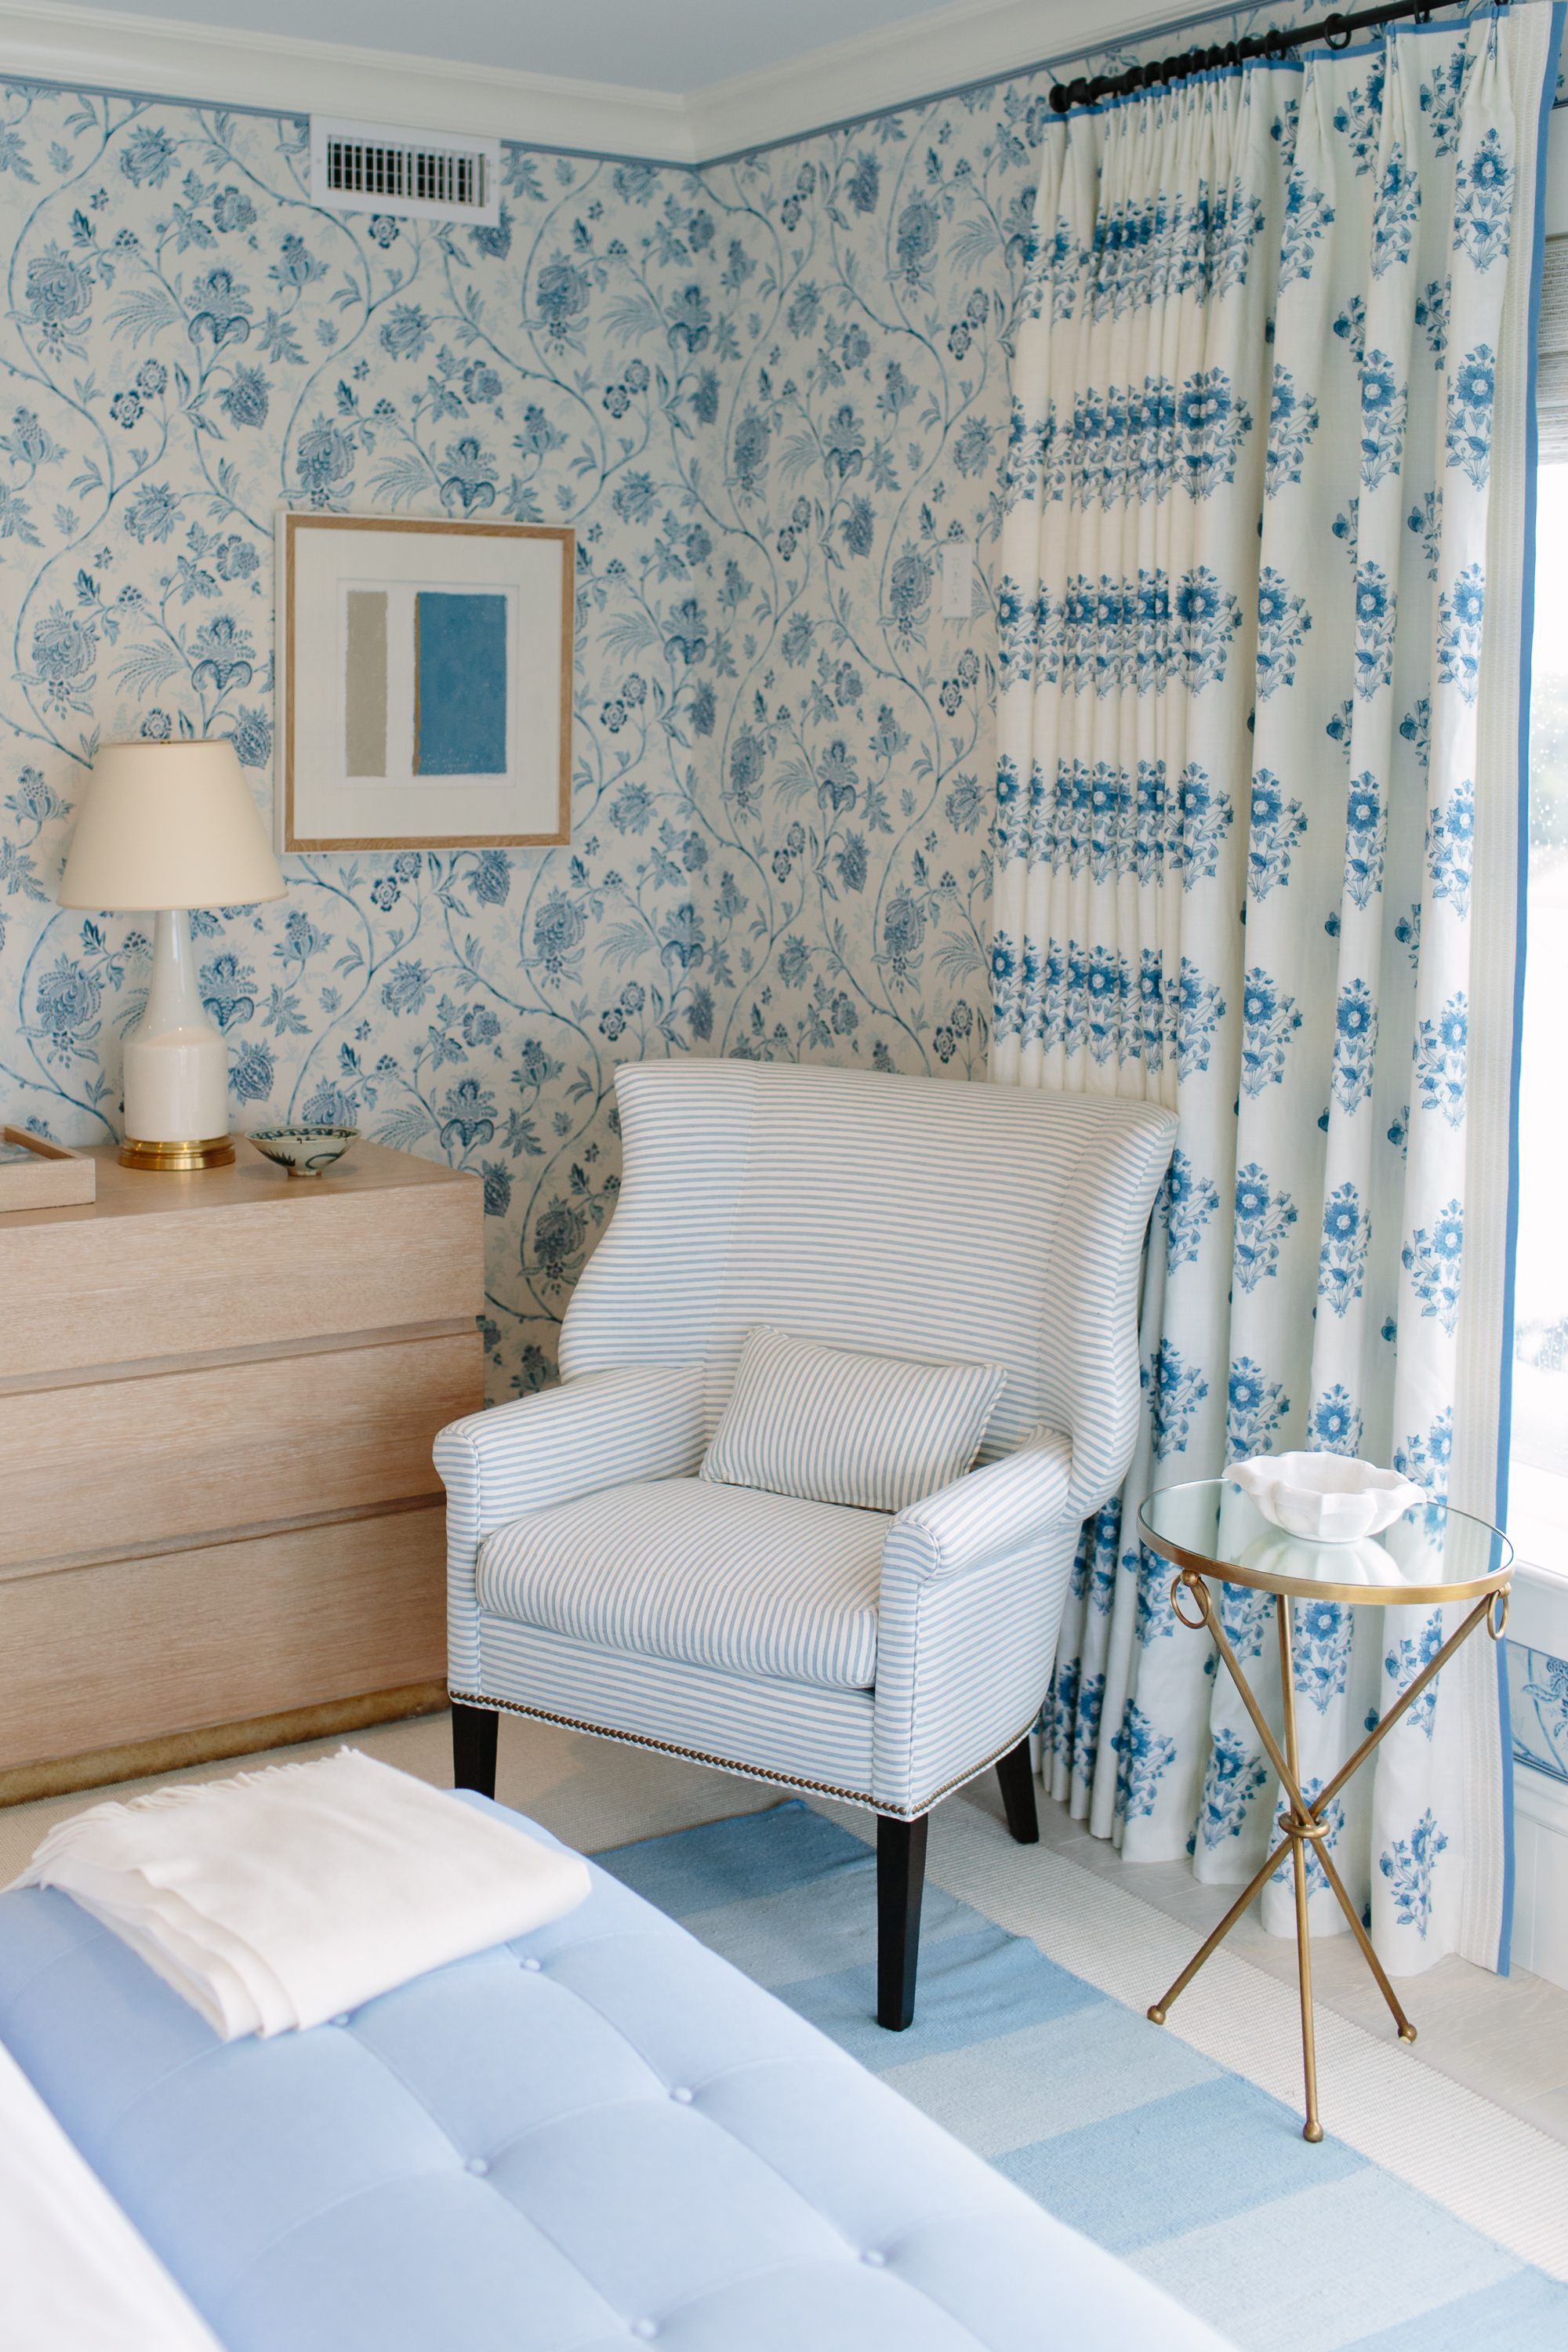 Corner of bedroom in Coastal Living Showhouse 2017 using Schumacher fabrics